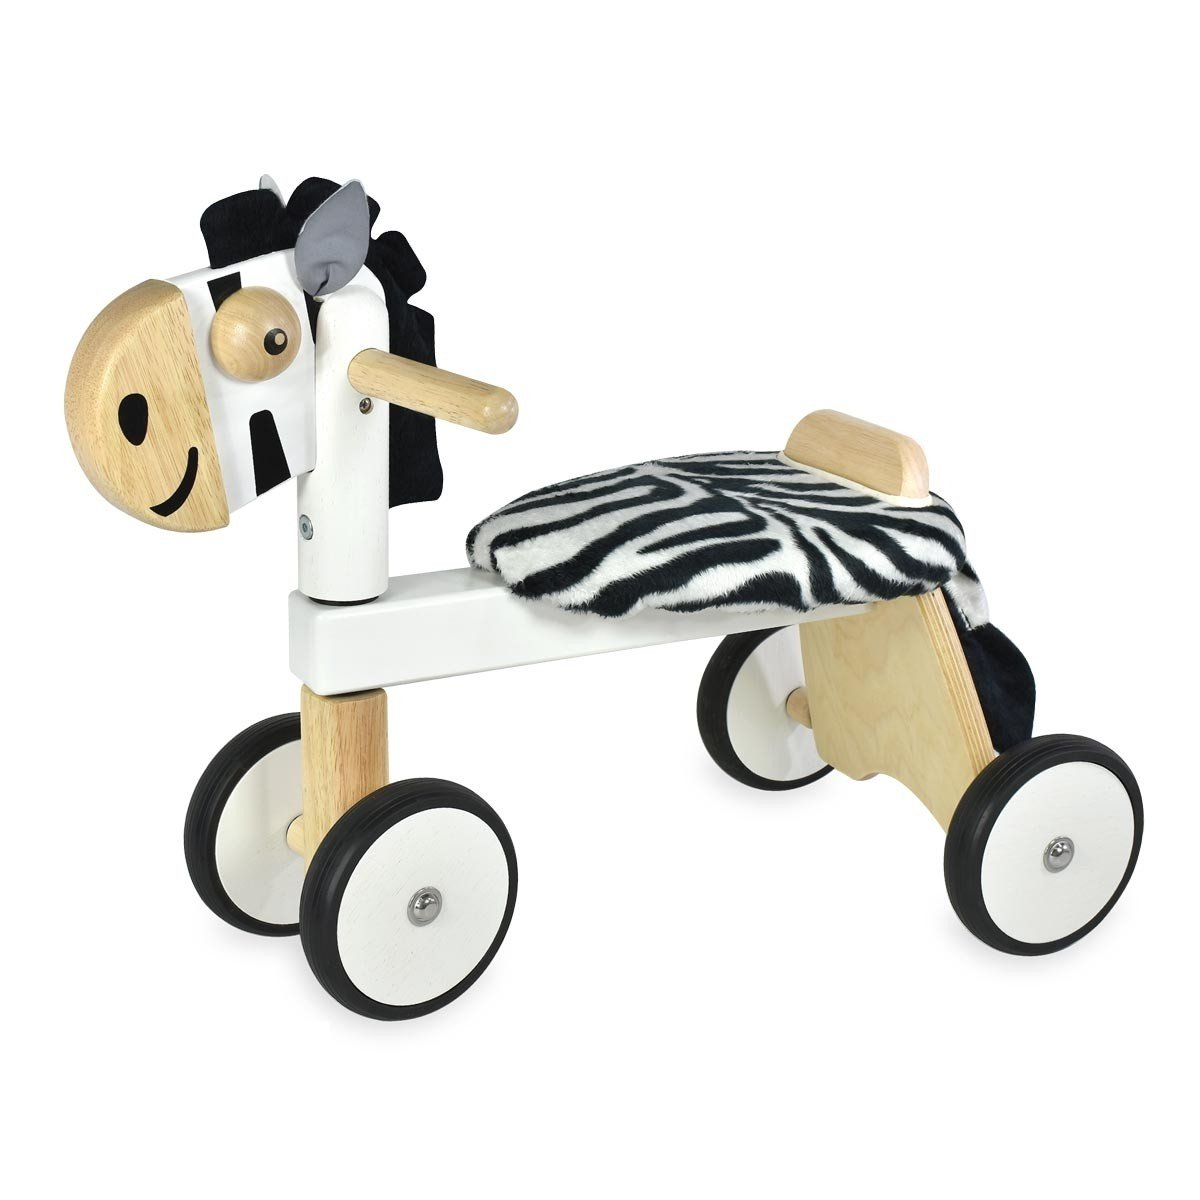 Zebra Rider Ride-On Tiger Im Toy Kids Riding Vehicles at Little Earth Nest Eco Shop